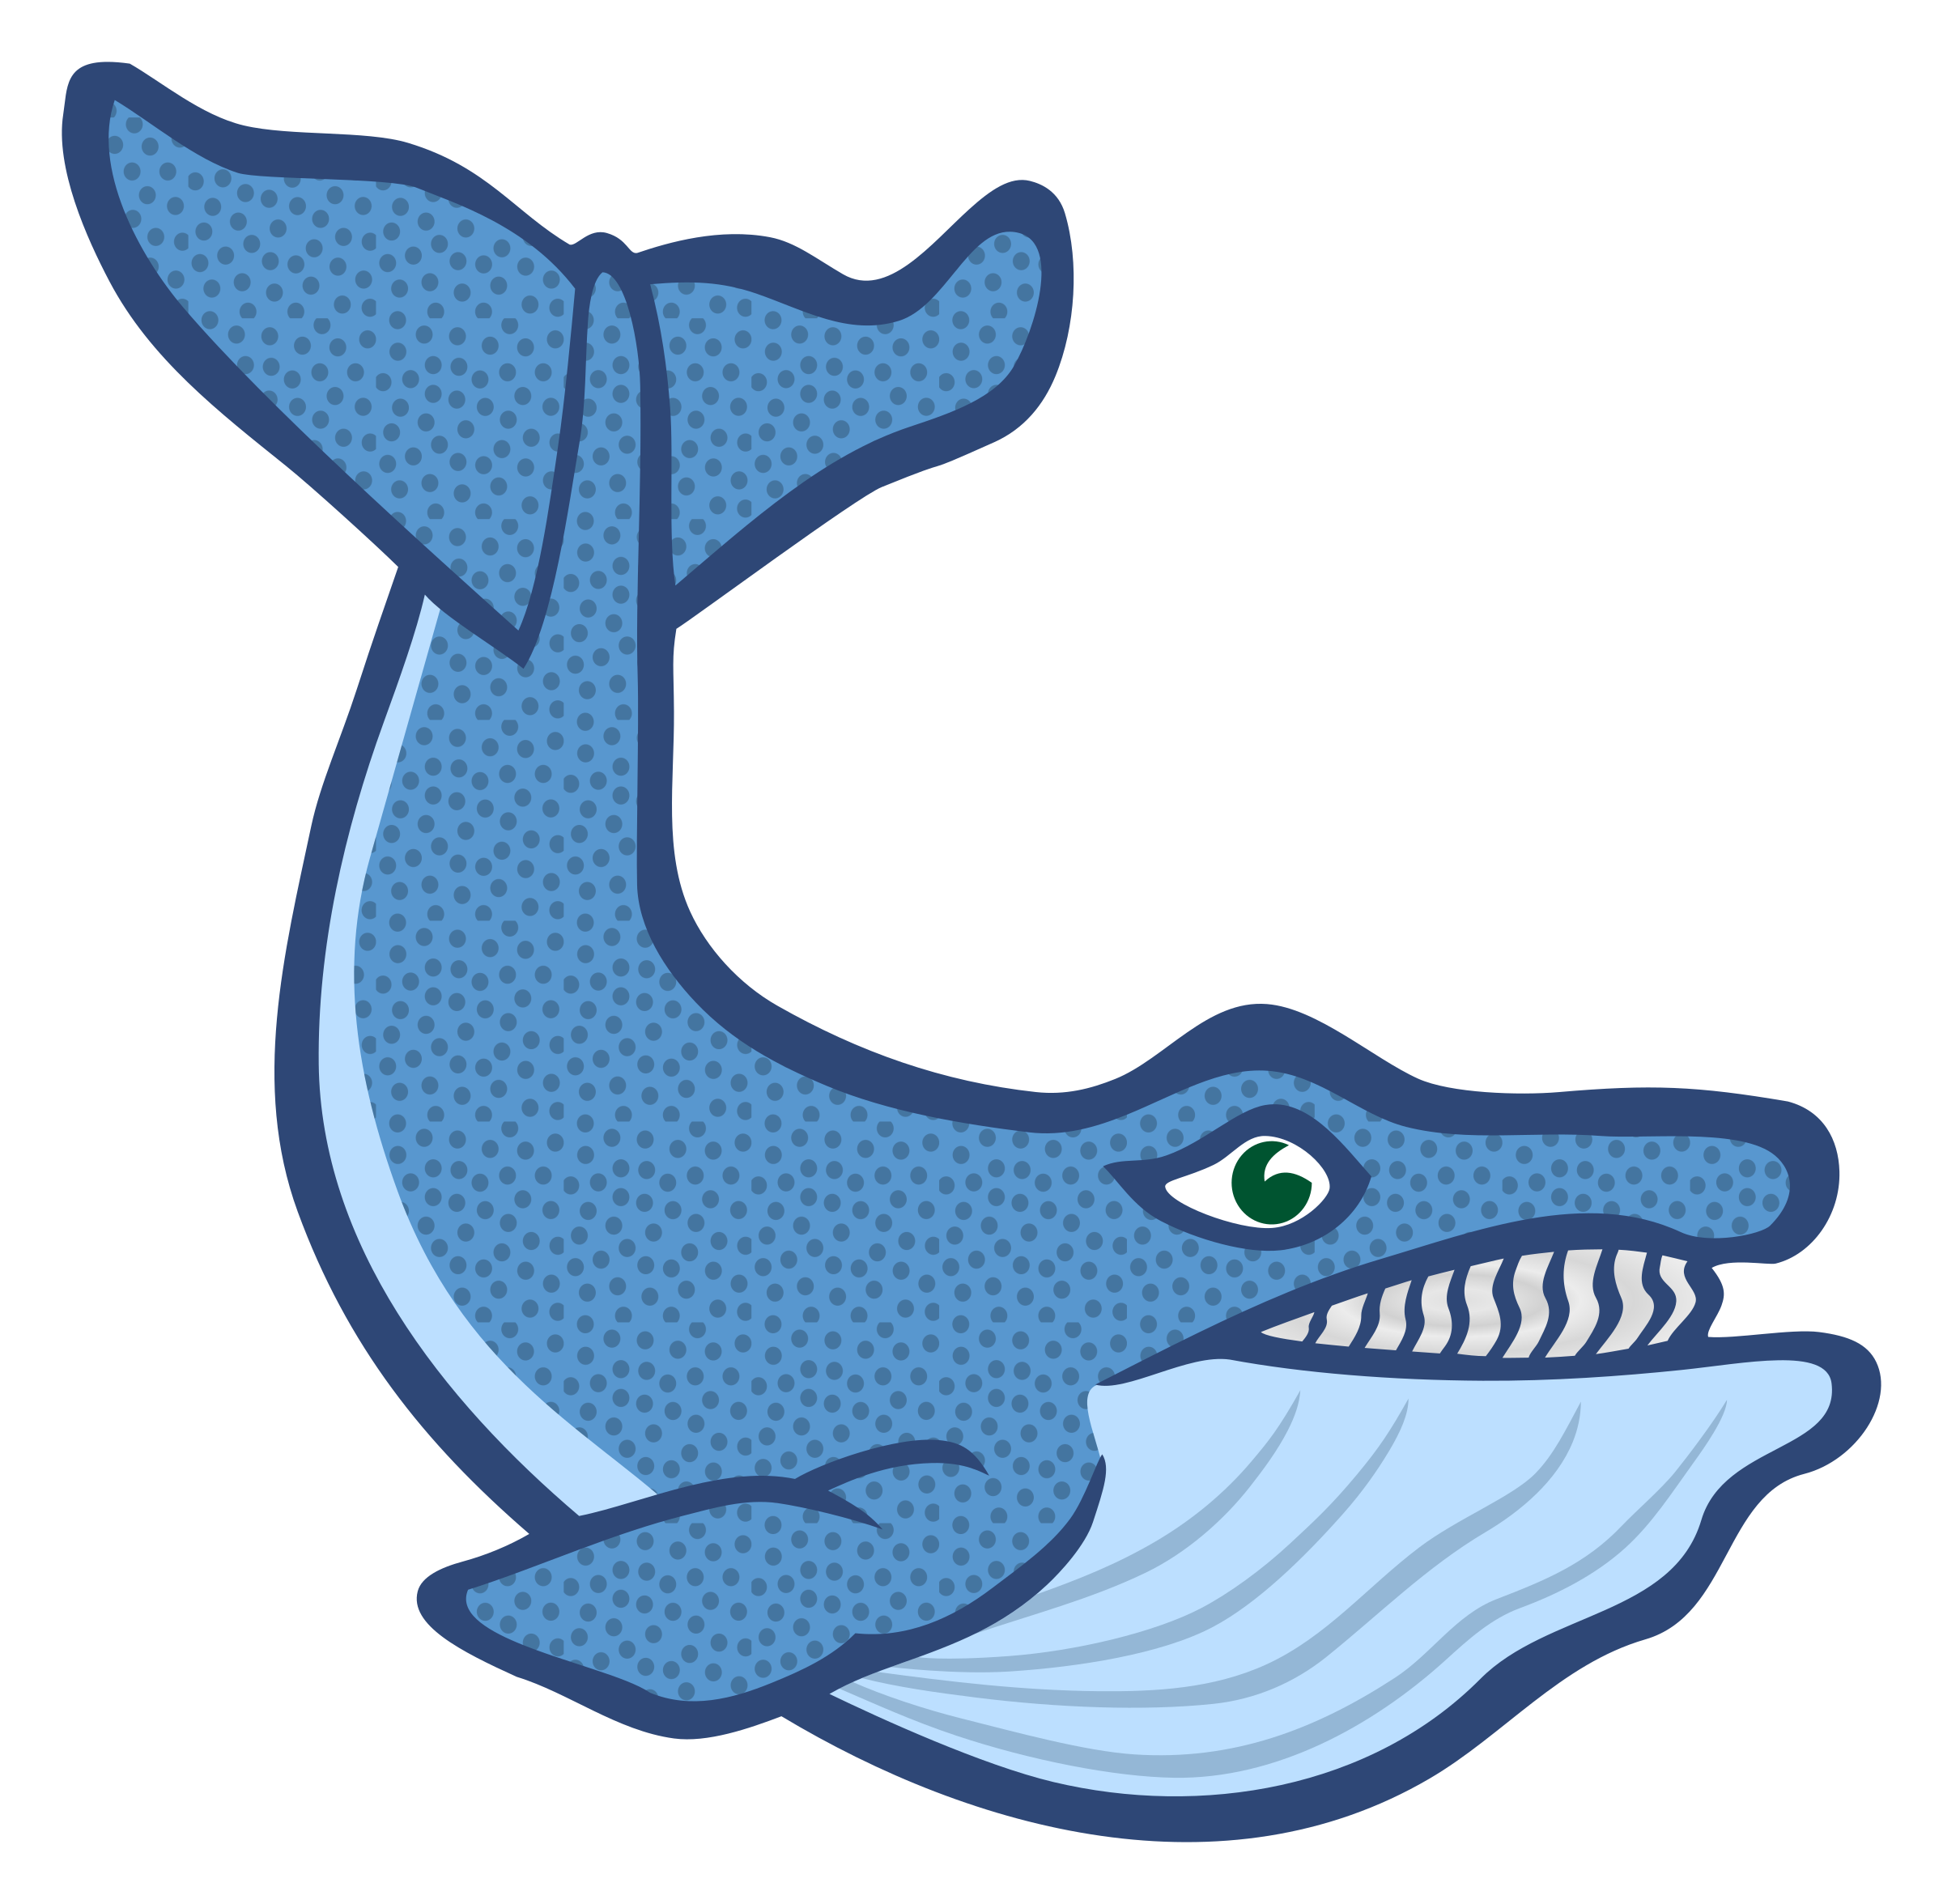 Coloured big image png. Cool clipart whale